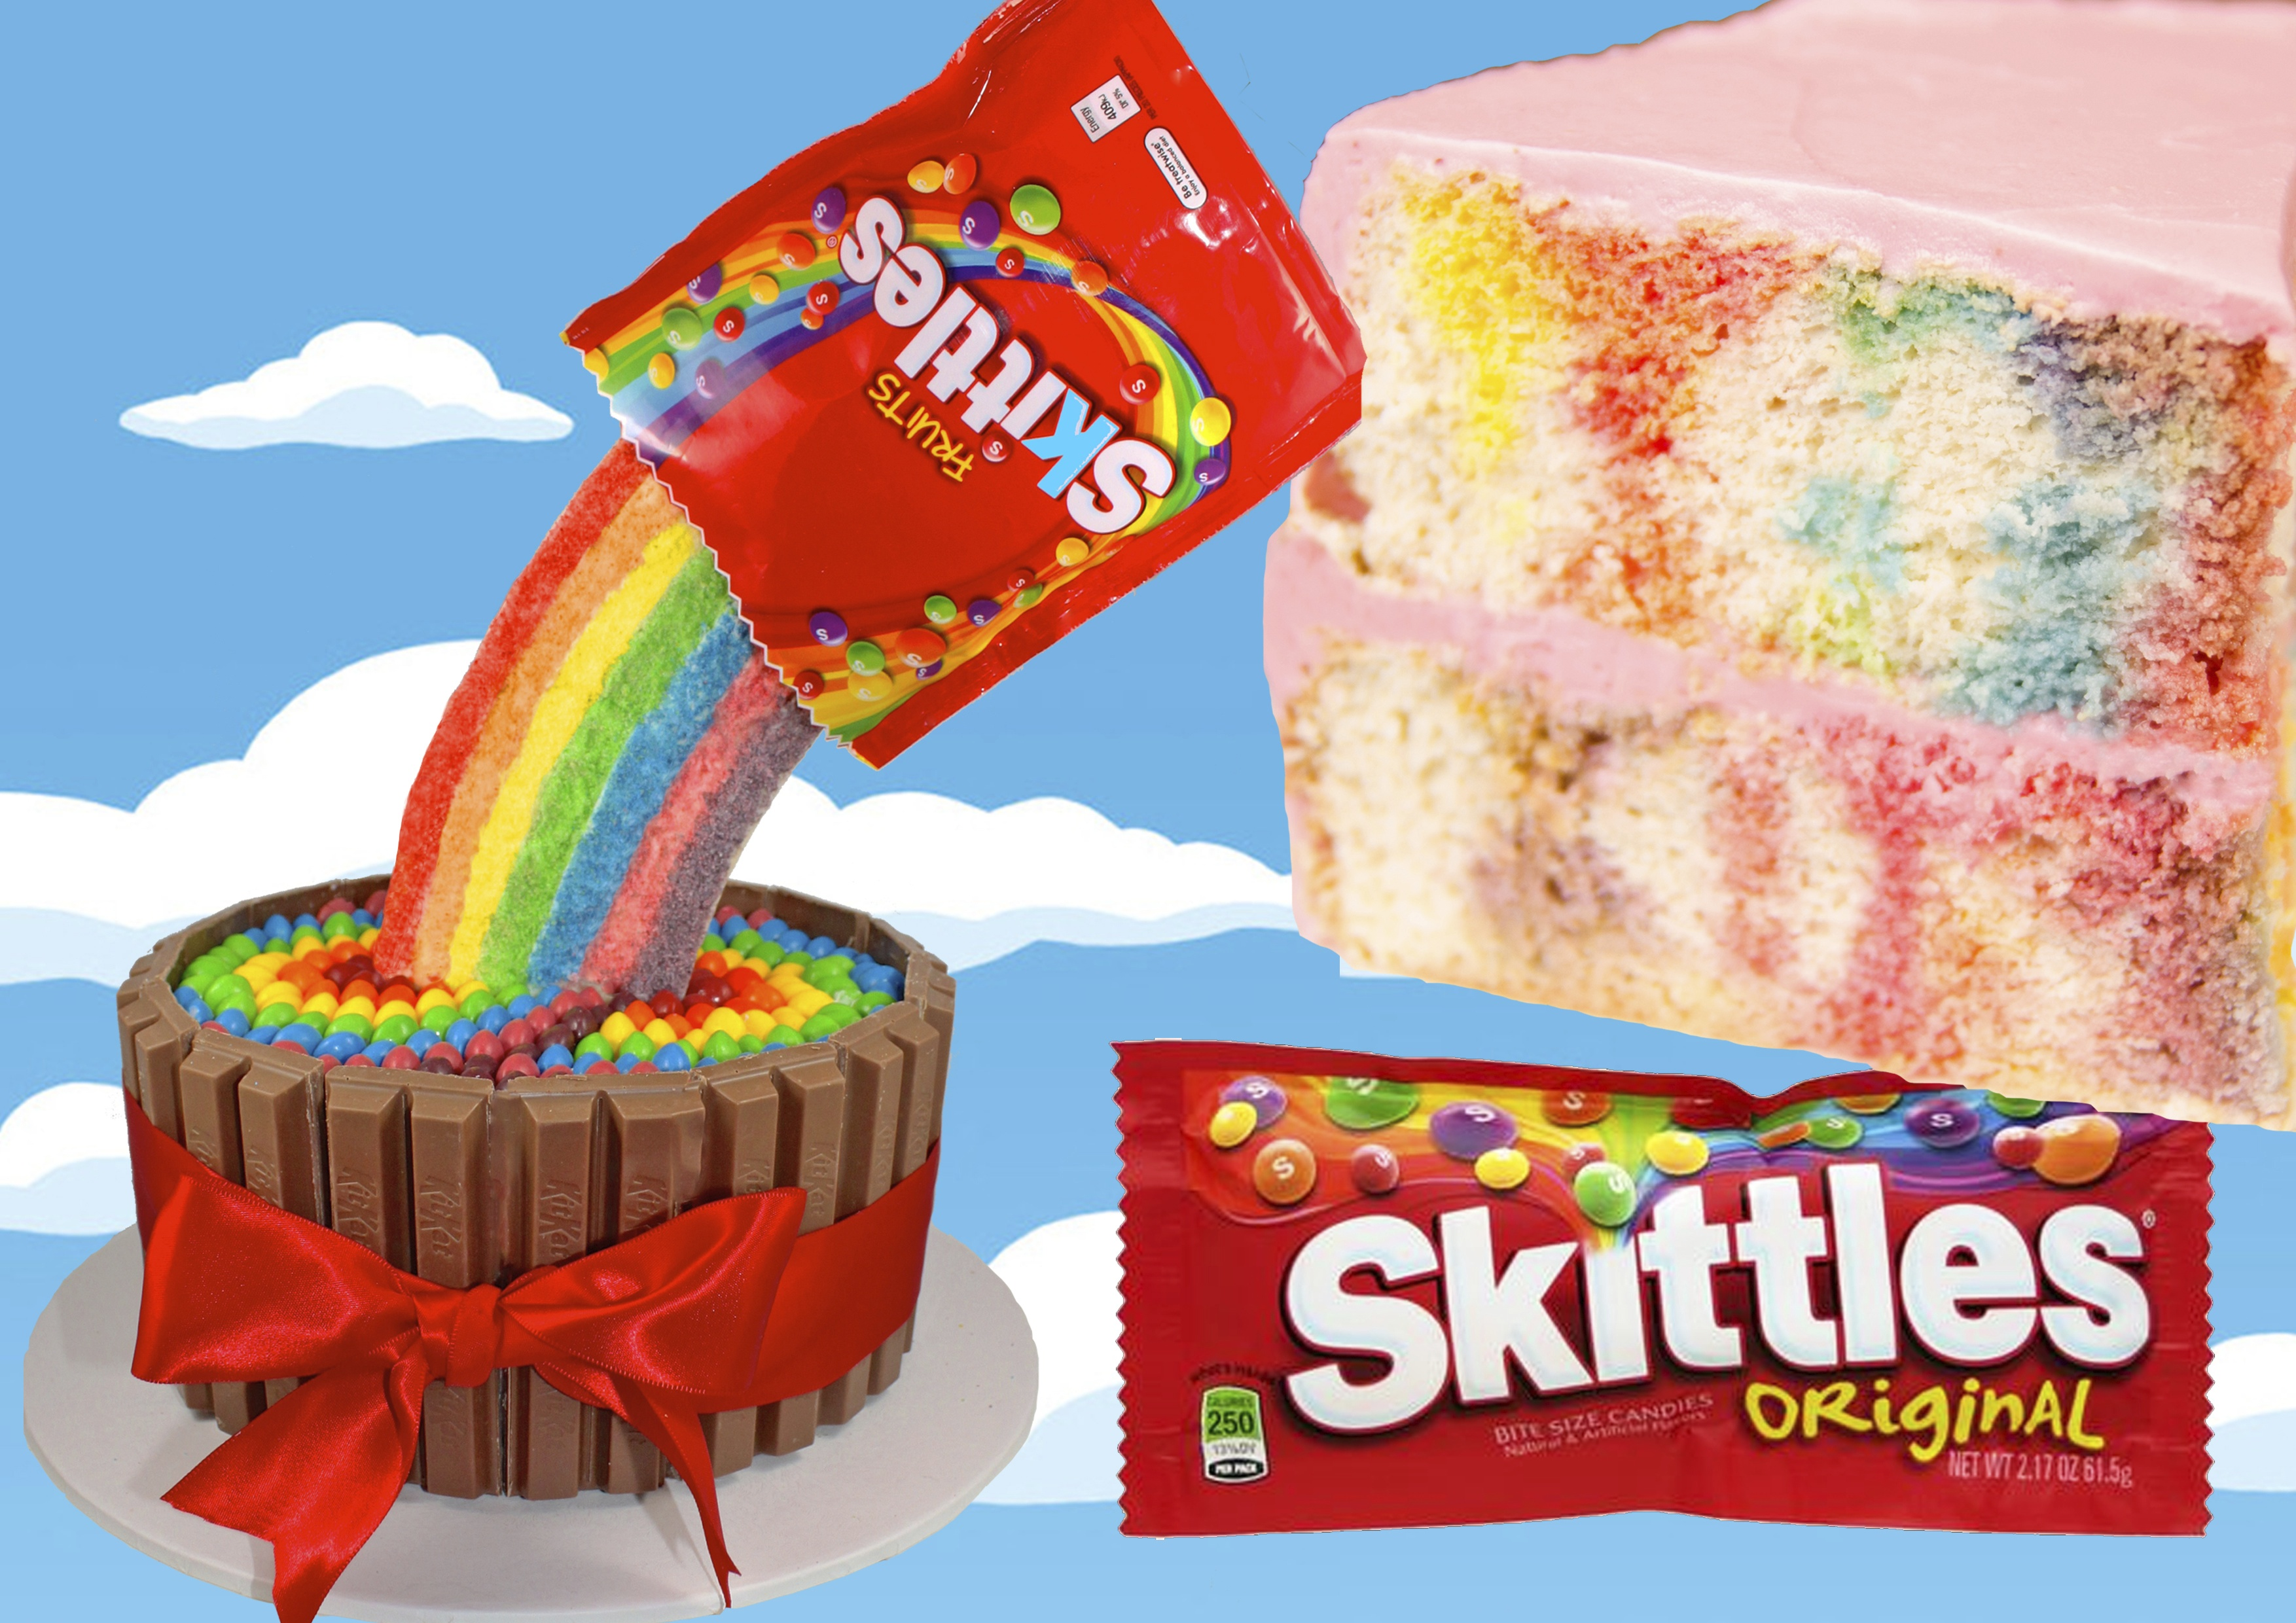 Enjoyable Skittles Rainbow Cake With A Pouring Candy Illusion Funny Birthday Cards Online Barepcheapnameinfo